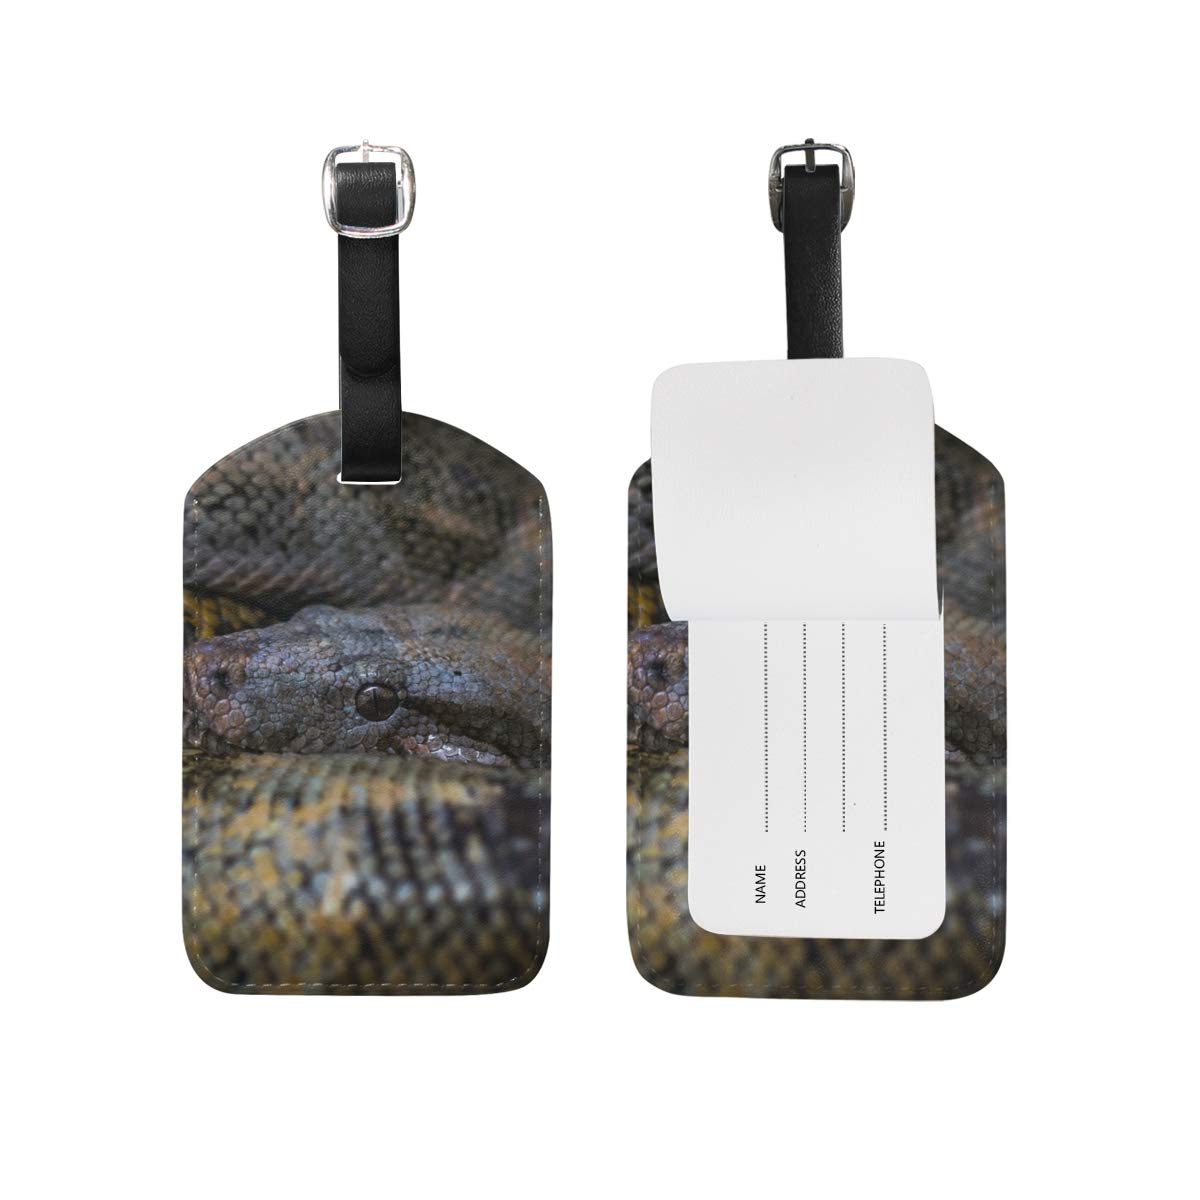 810222f343a Amazon.com | MUOOUM Reptile Anaconda Snake Luggage Tages Travel Labels  Suitcase Bag Tag with Name Address Cards 2 Pcs Set | Luggage Tags